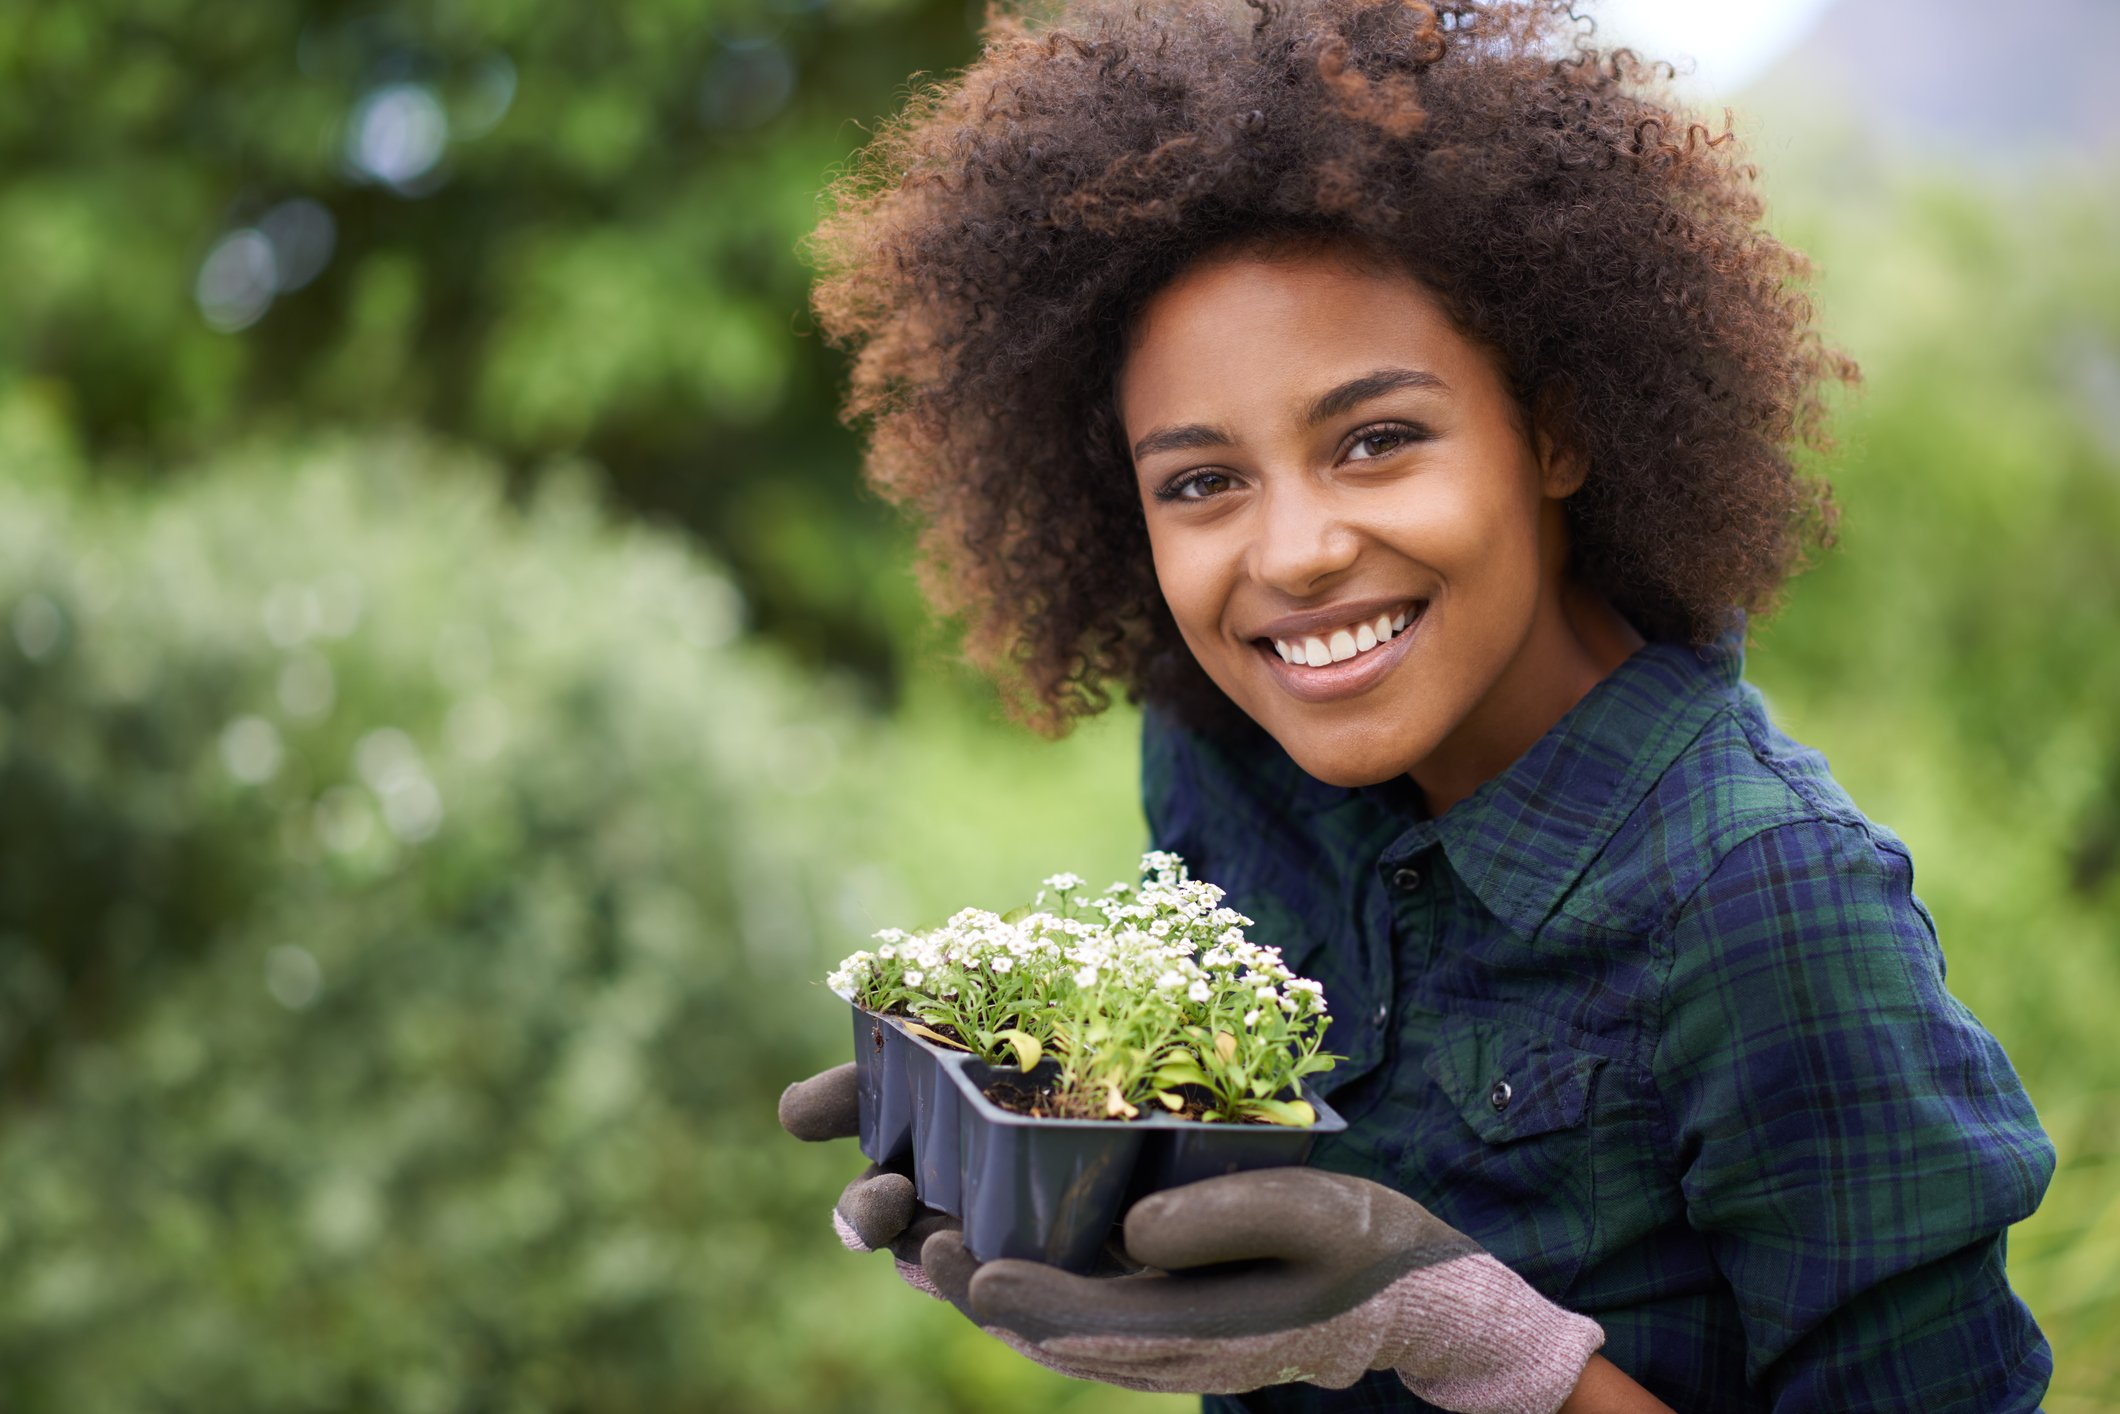 5 Ways To Do Environmental Activism Without The